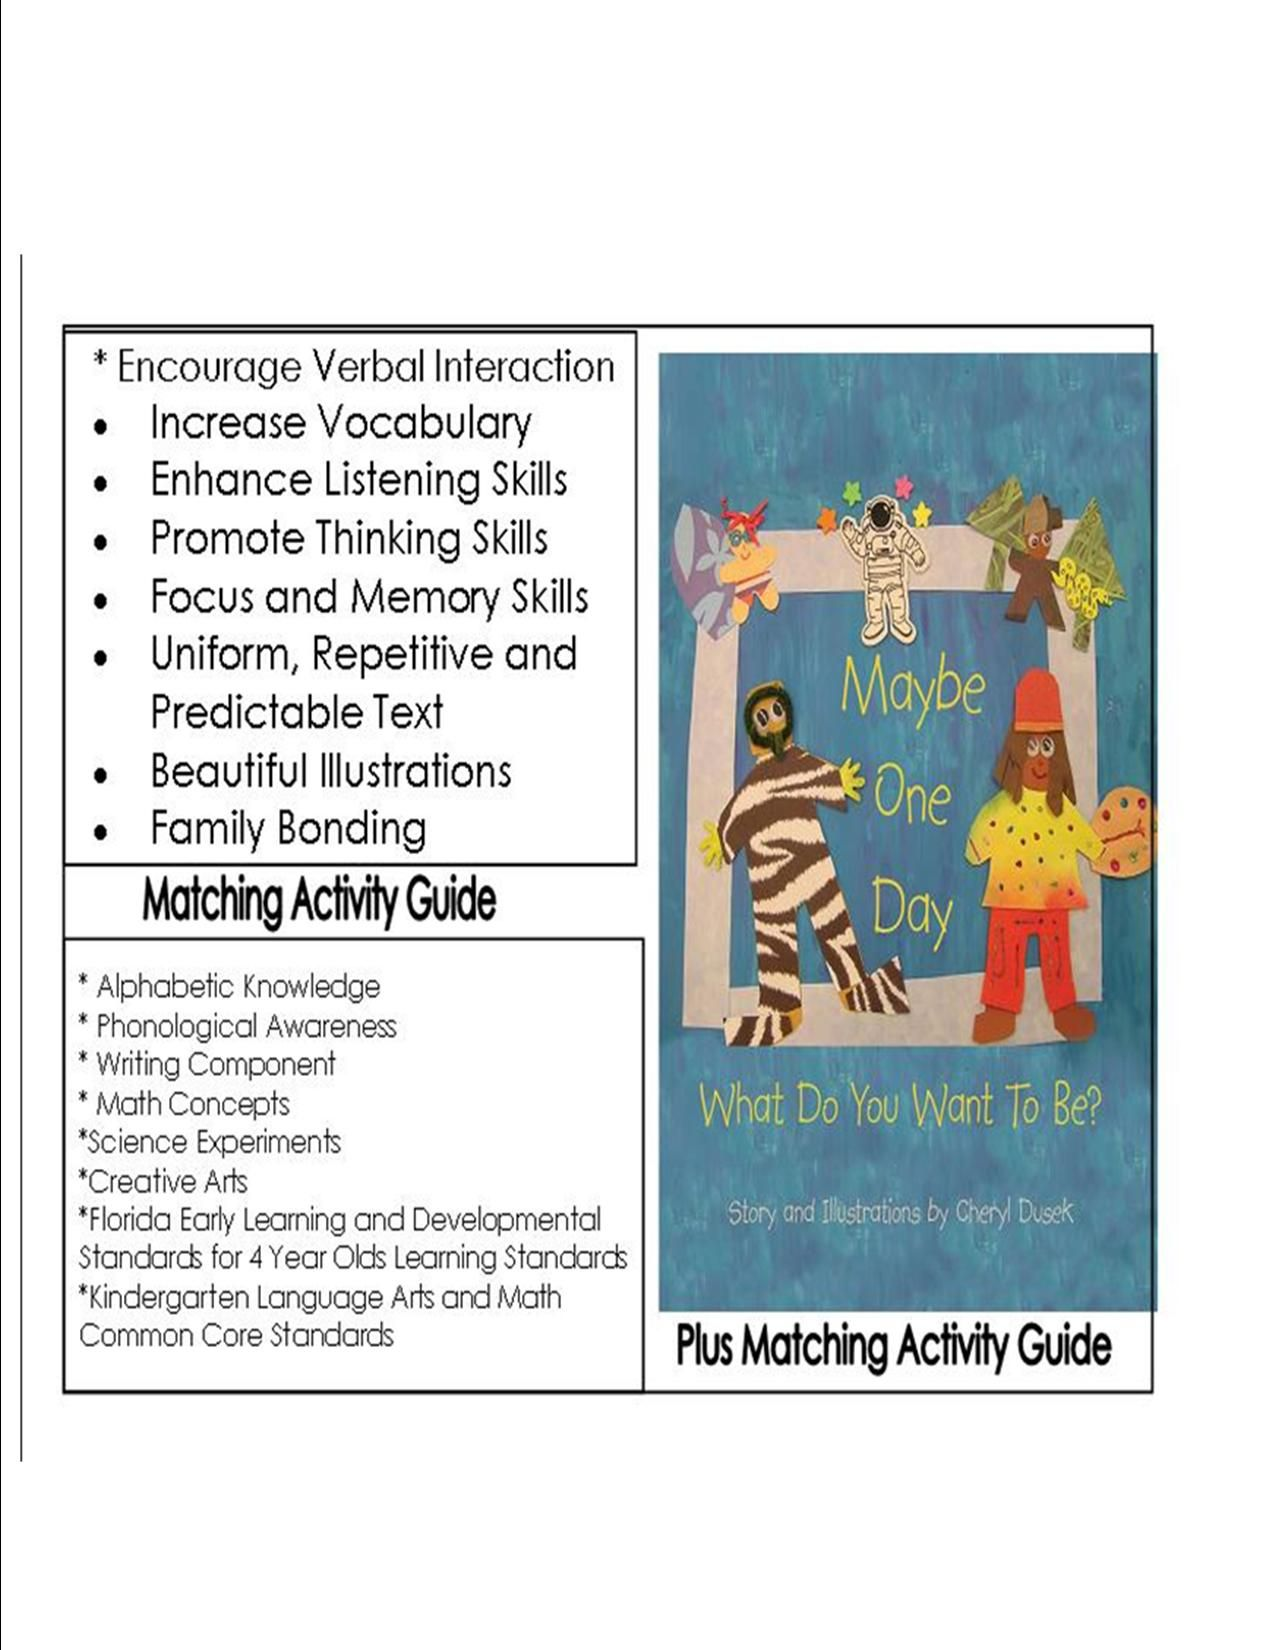 Activity Guide Is Aligned With Florida Early Learning